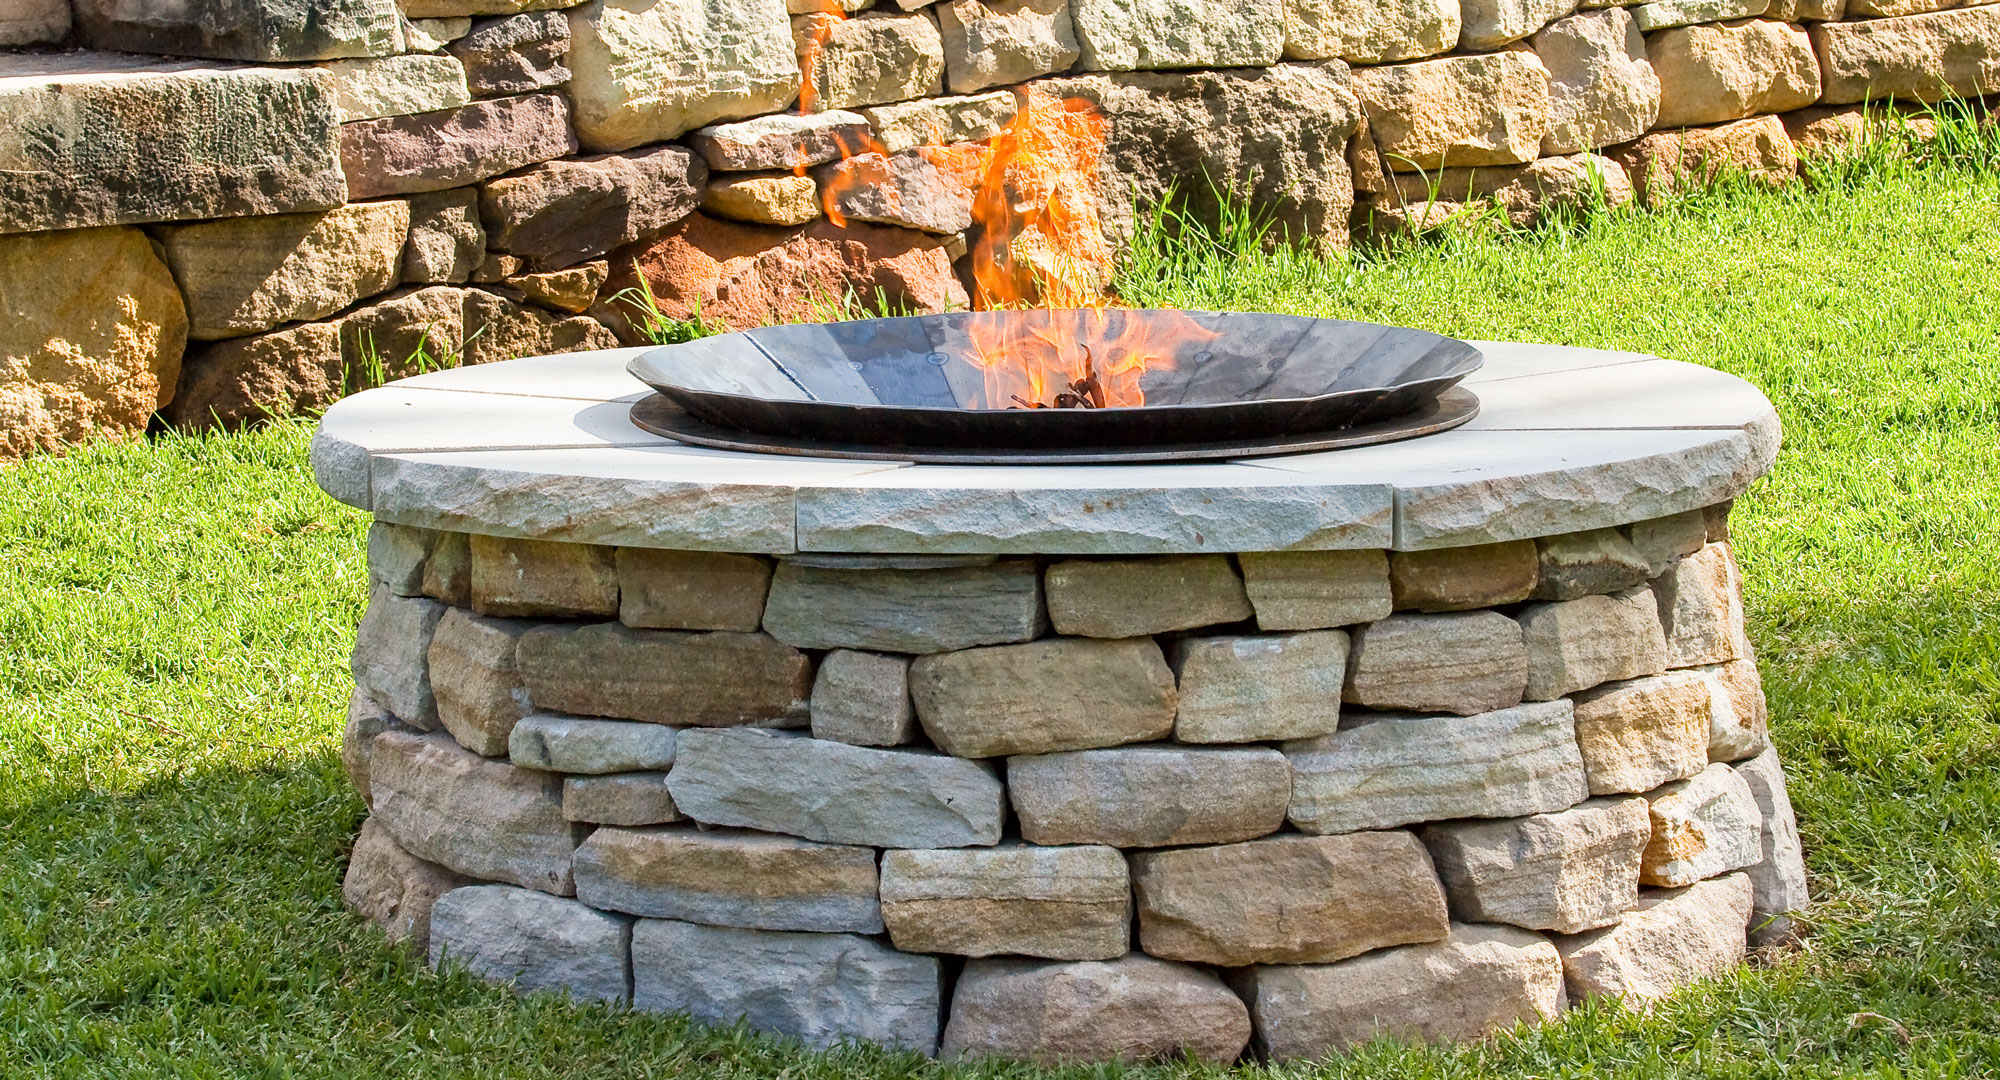 make your own backyard fire pit diy gardening craft recipes renovating better homes and. Black Bedroom Furniture Sets. Home Design Ideas